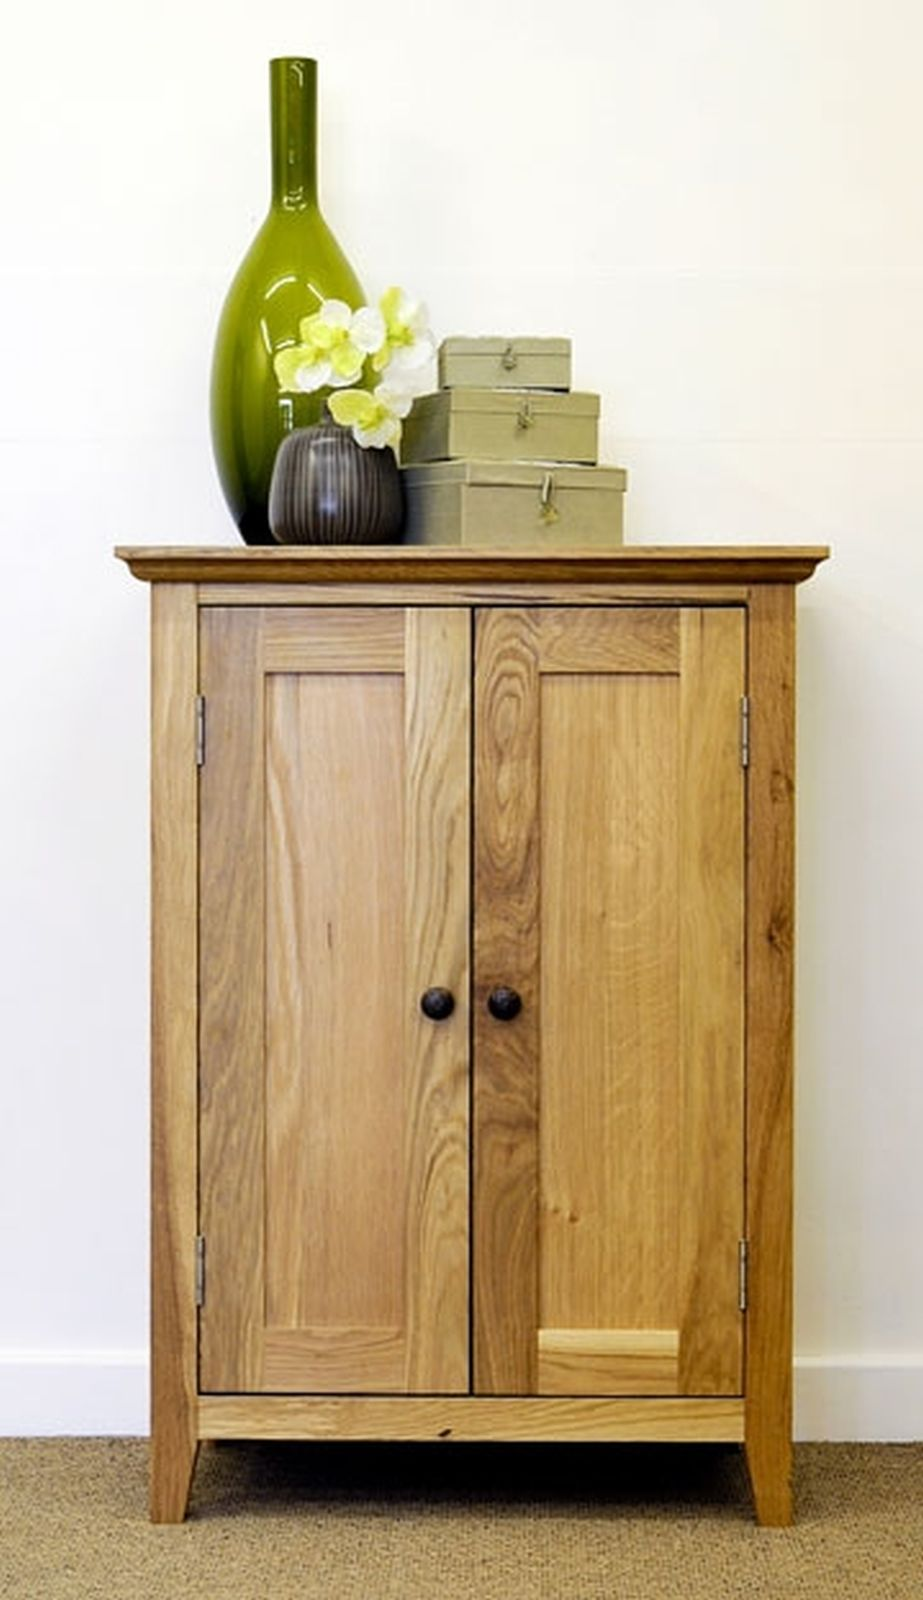 Mumford solid oak furniture hallway shoe storage cupboard for Solid oak furniture